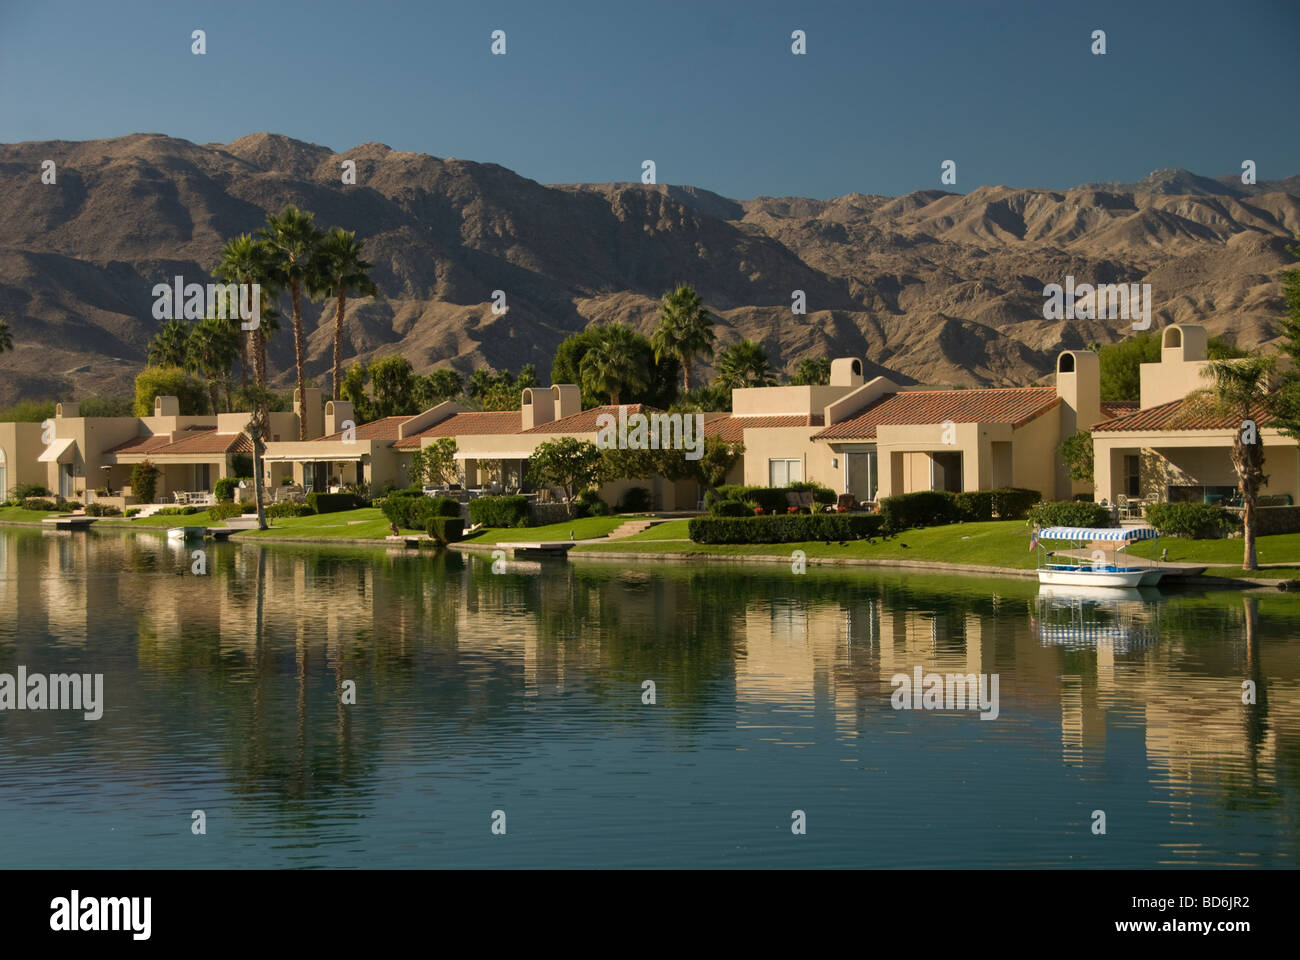 Lakeside Homes In Gated Community In La Quinta Indian